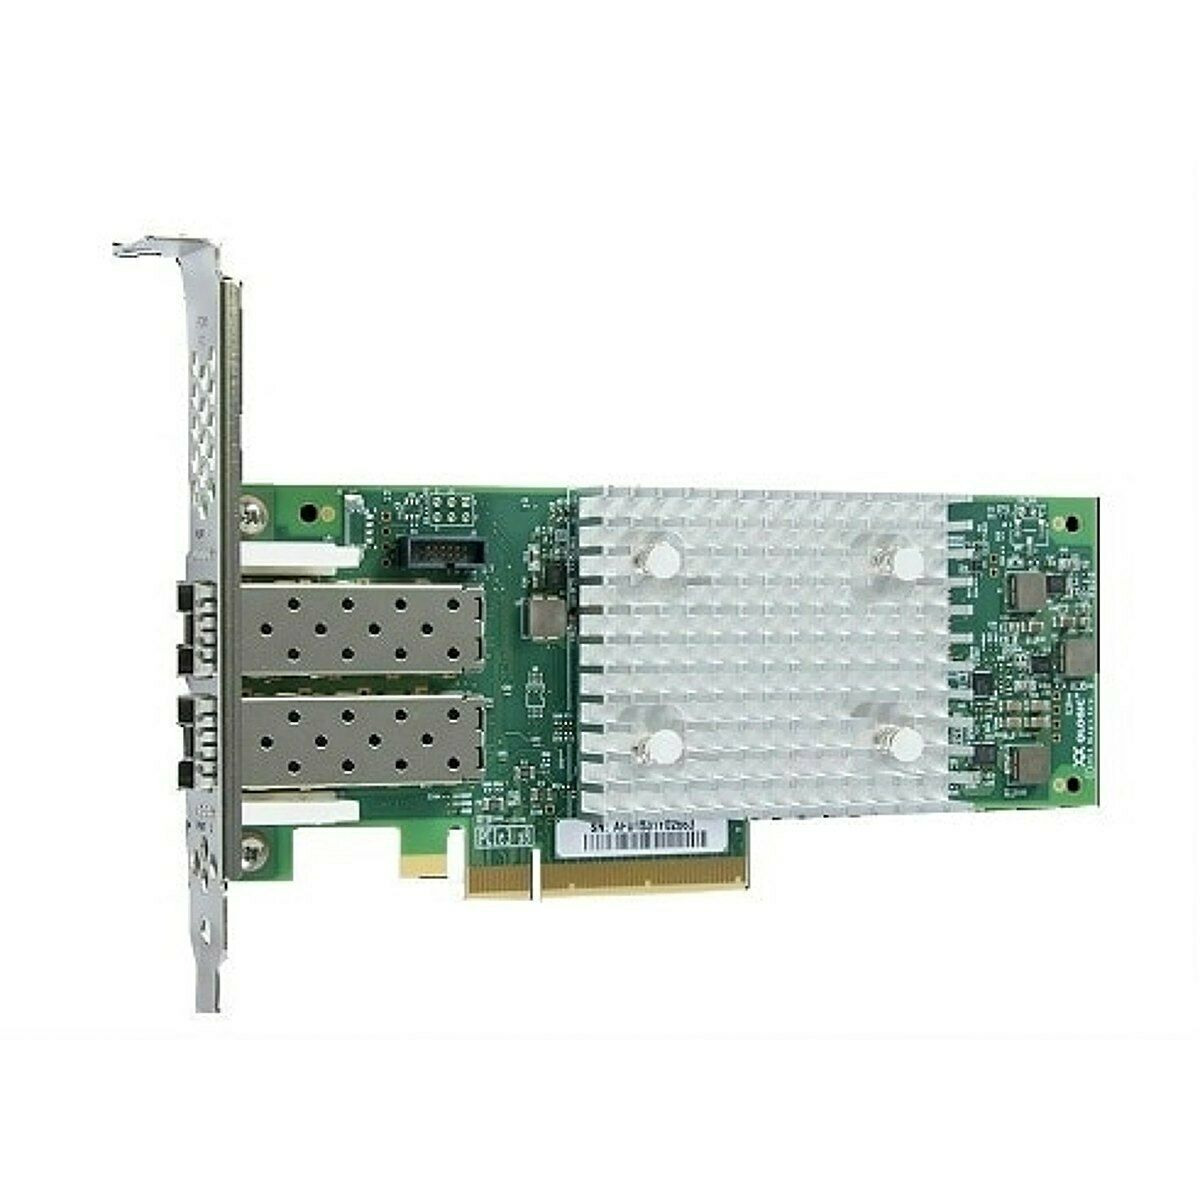 Dell 403-BBMU Qlogic 2692 Dual Port 16Gb Fibre Channel HBA - Manufacturer Recertified